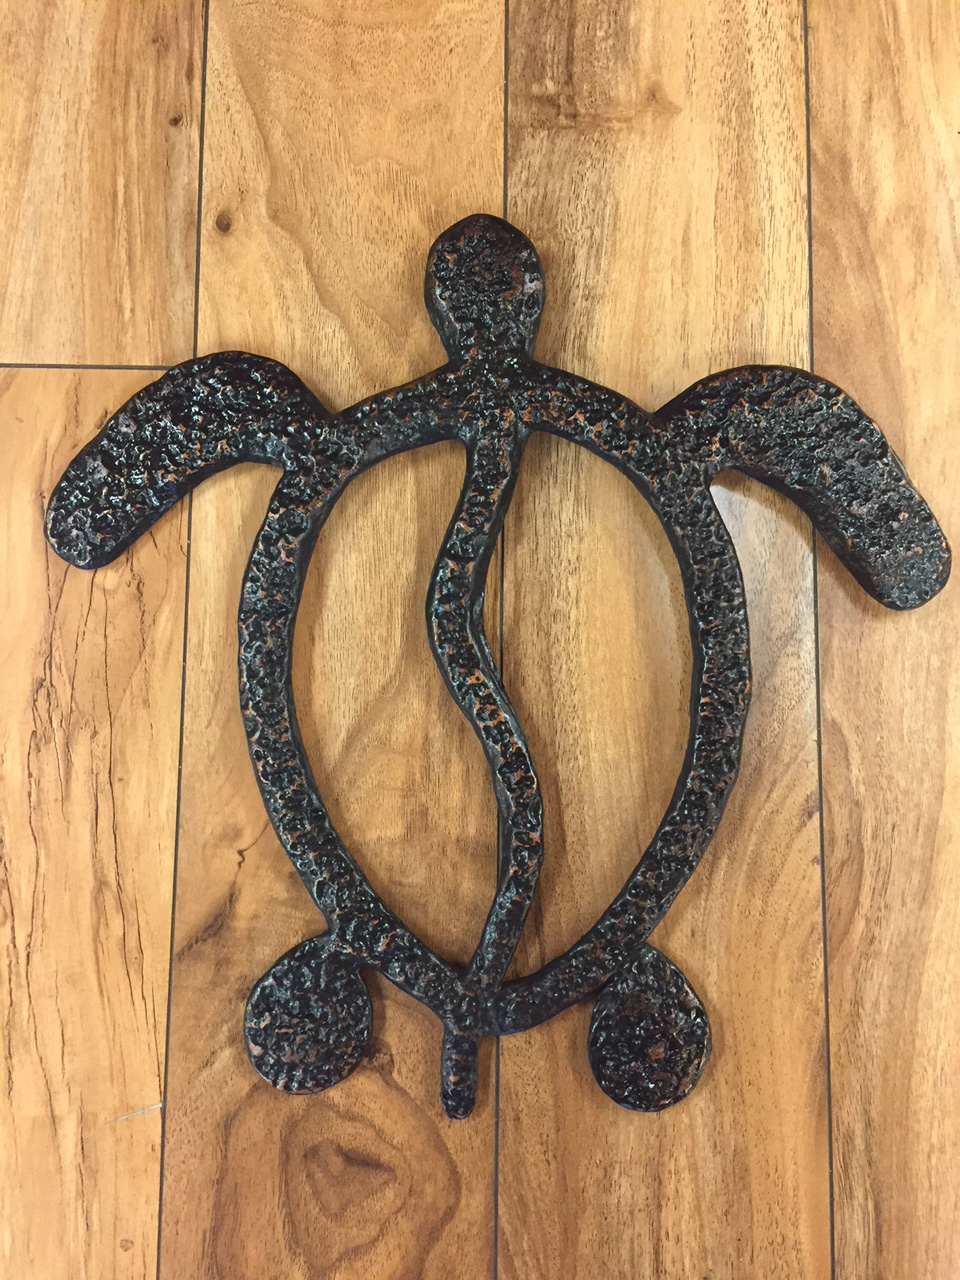 Honu by Charlie Corda wall hanging sculpture